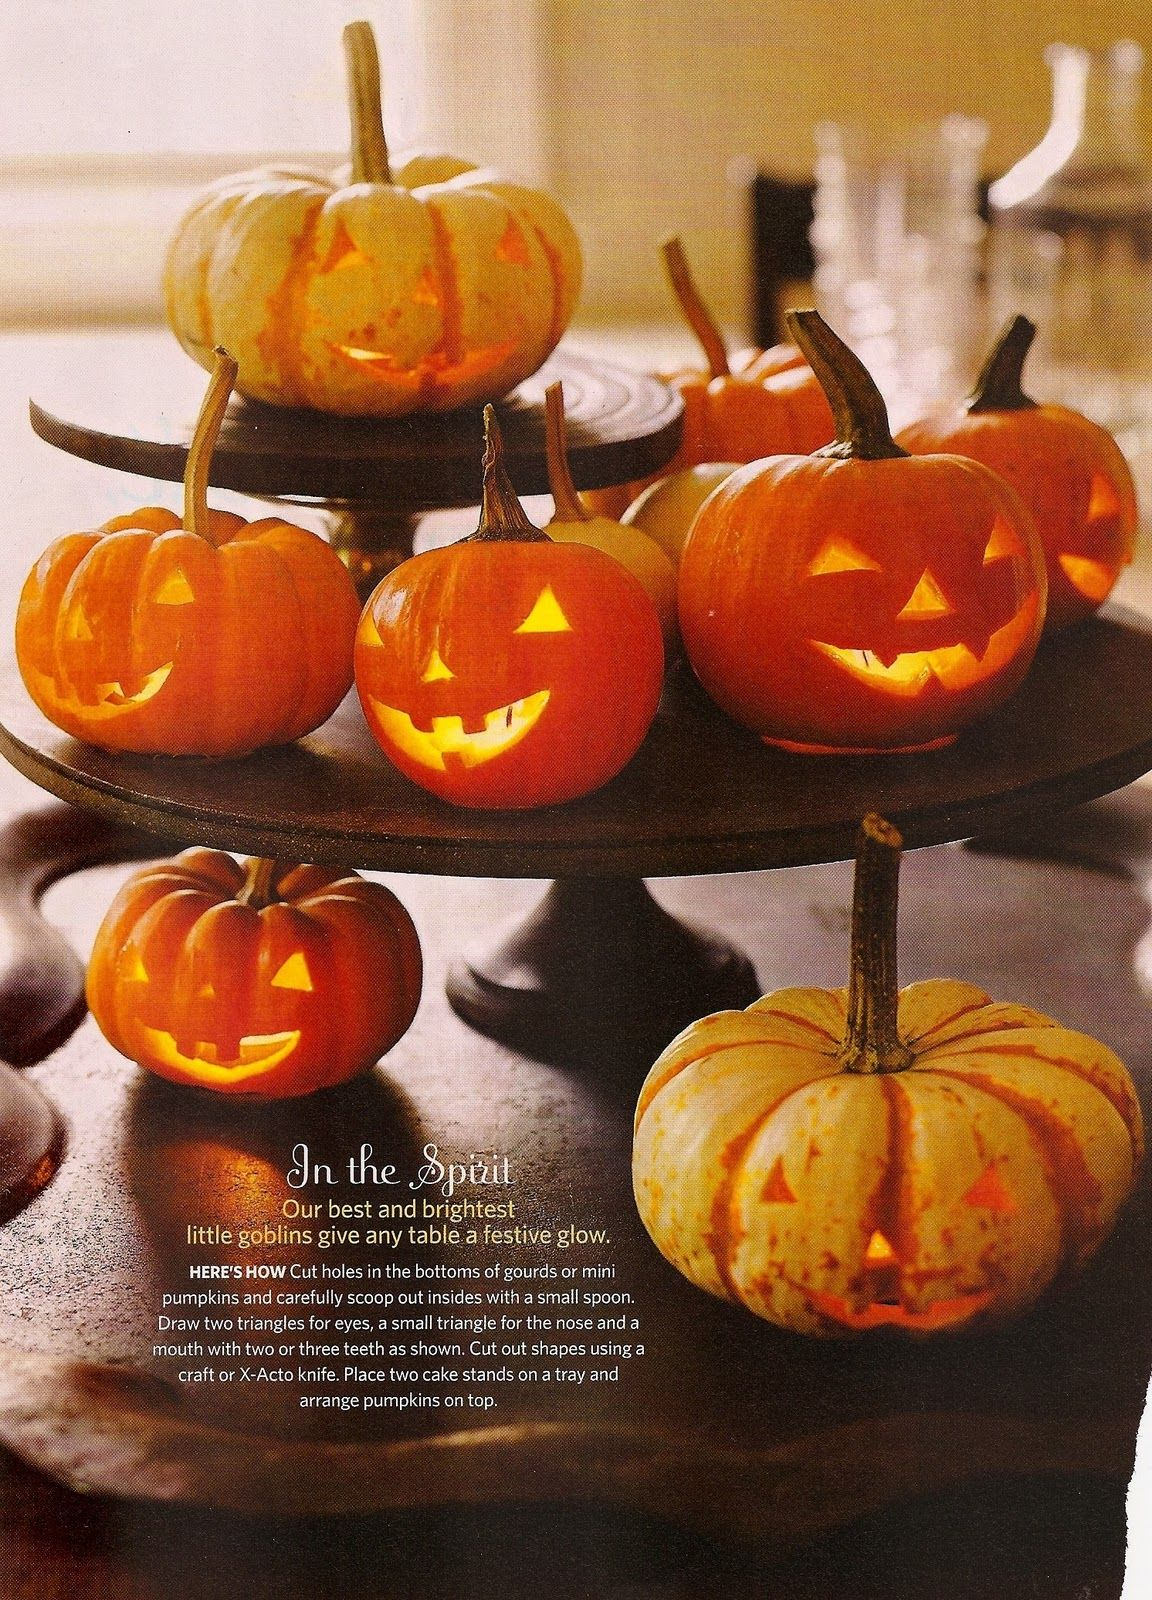 Carve mini,pumpkins from bottom and place over tea lights